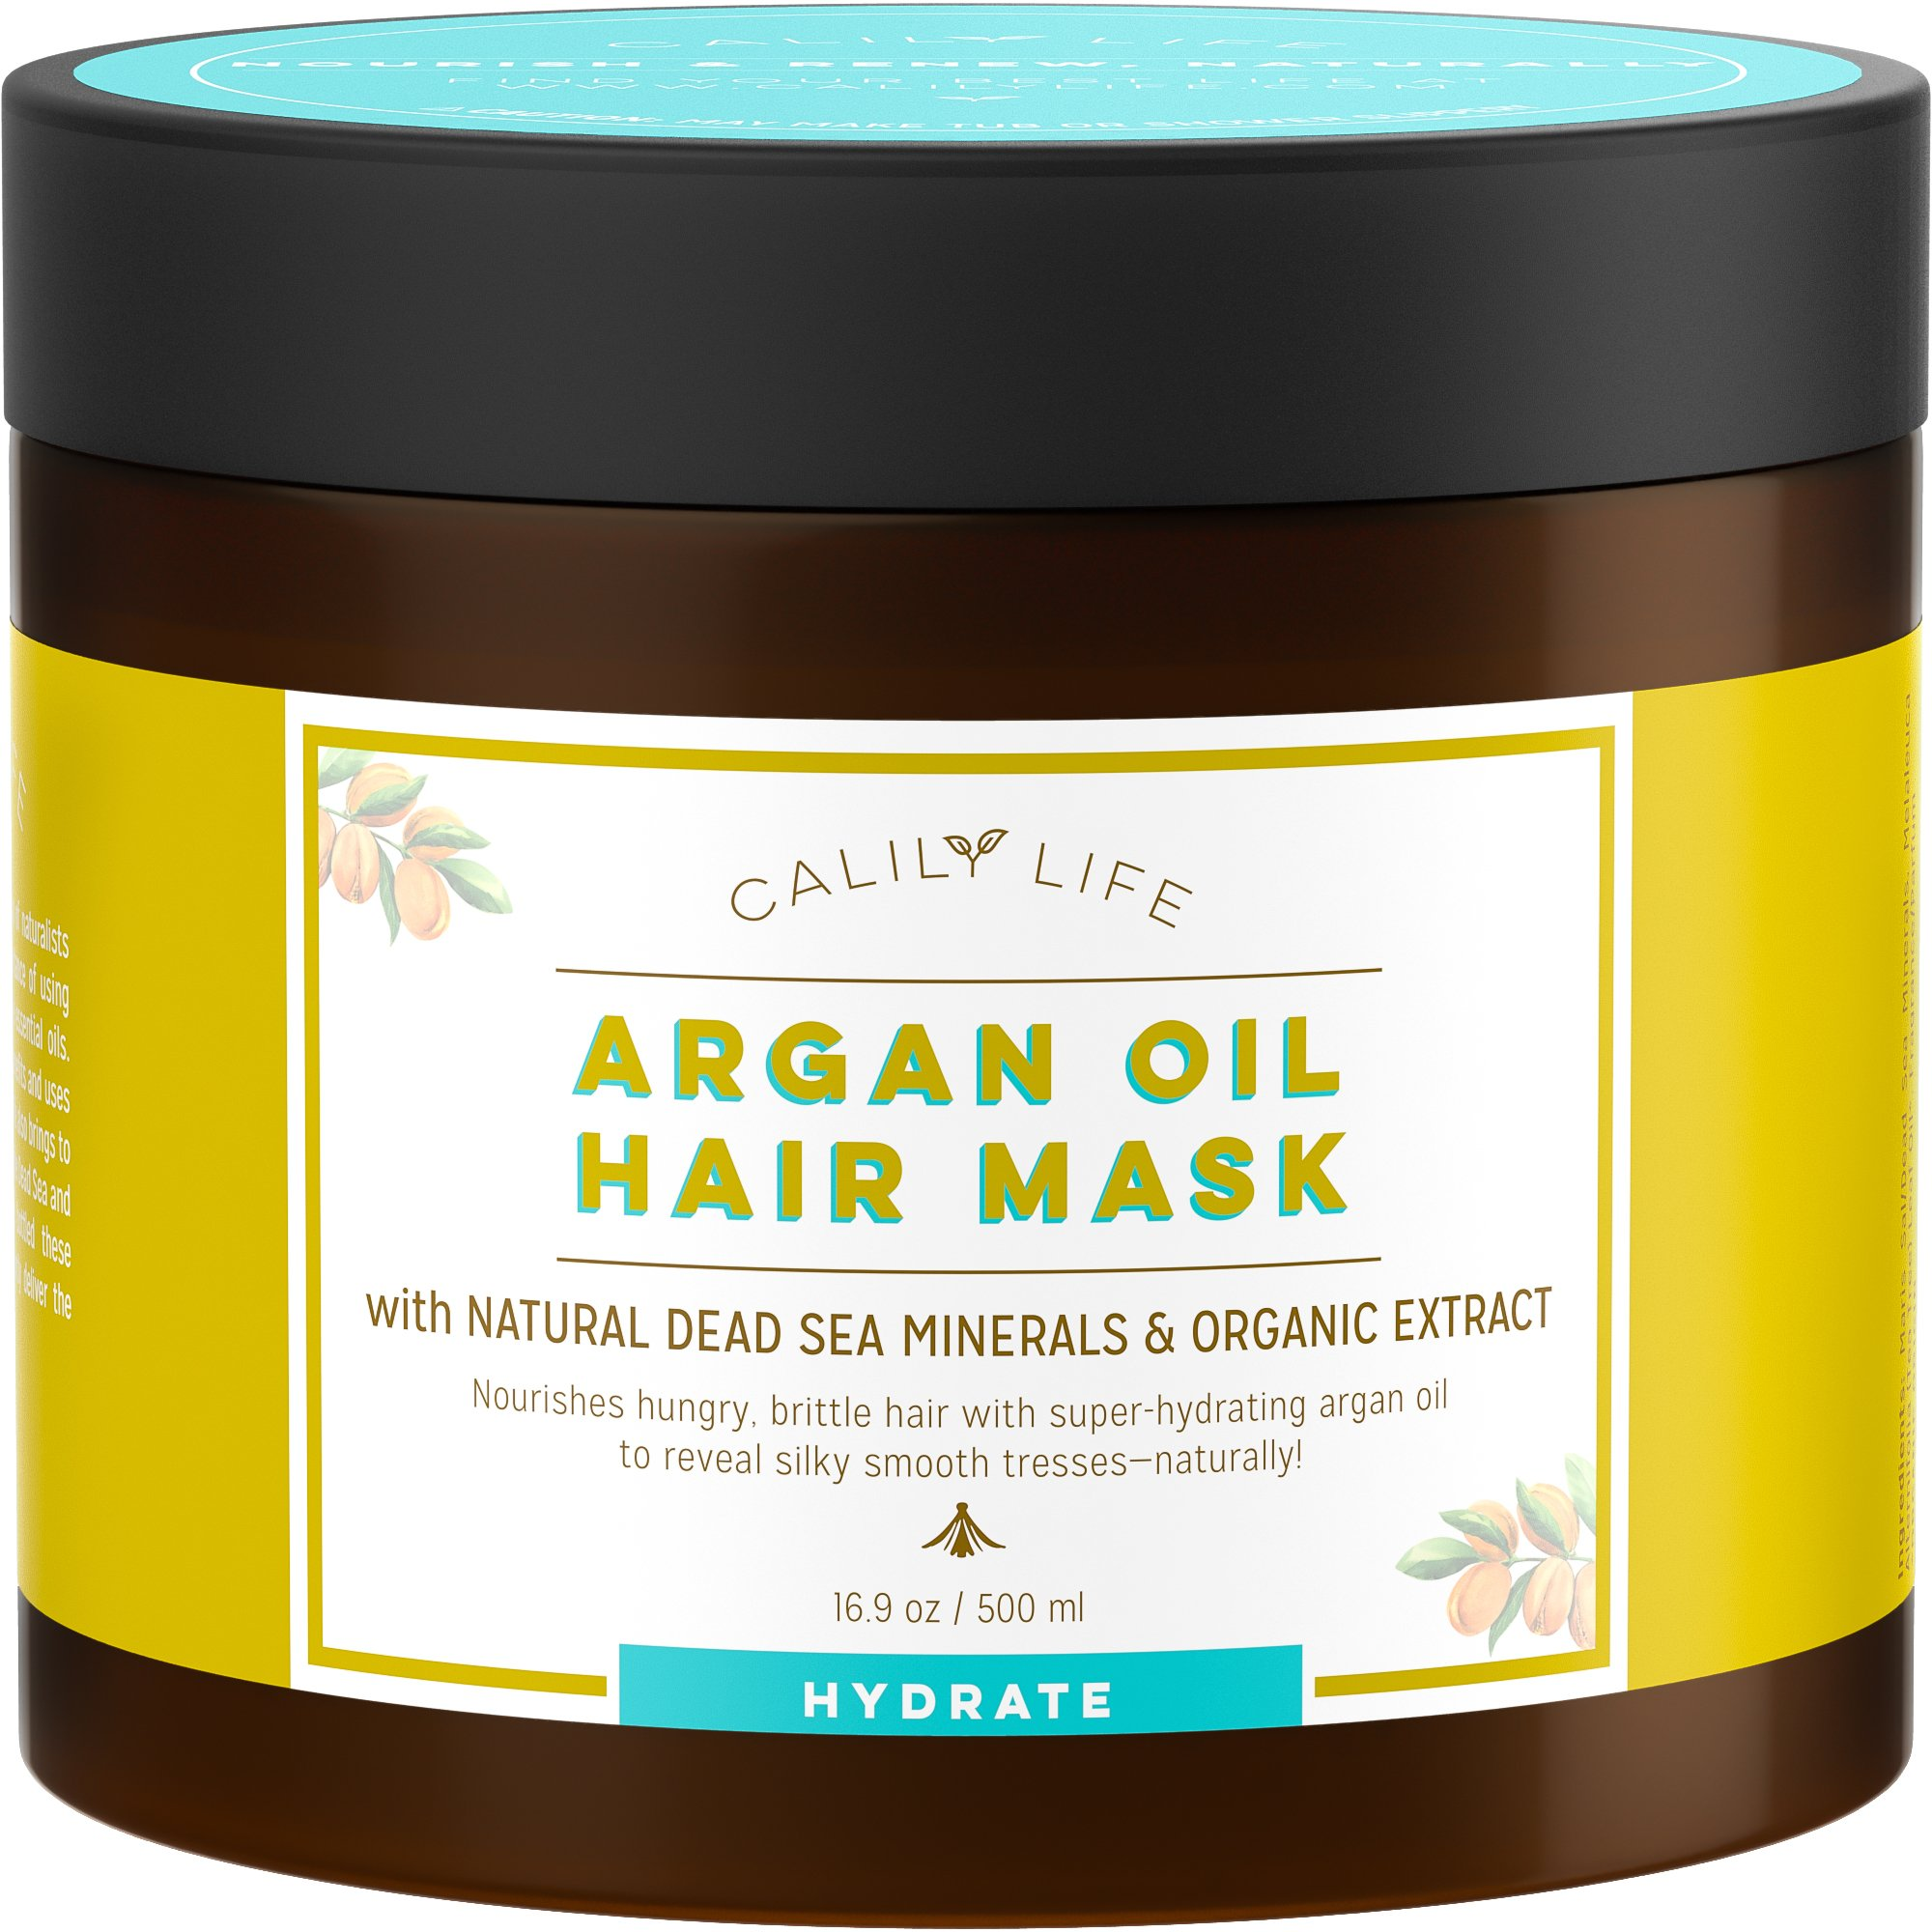 Calily Life Organic Moroccan Argan Oil Hair Mask with Dead Sea Minerals, 17 Oz.-Deep Conditioner and Nourishing - Detoxifies, Softens, Strengthens & Shines – Promotes Healing and Natural Hair Growth by Calily